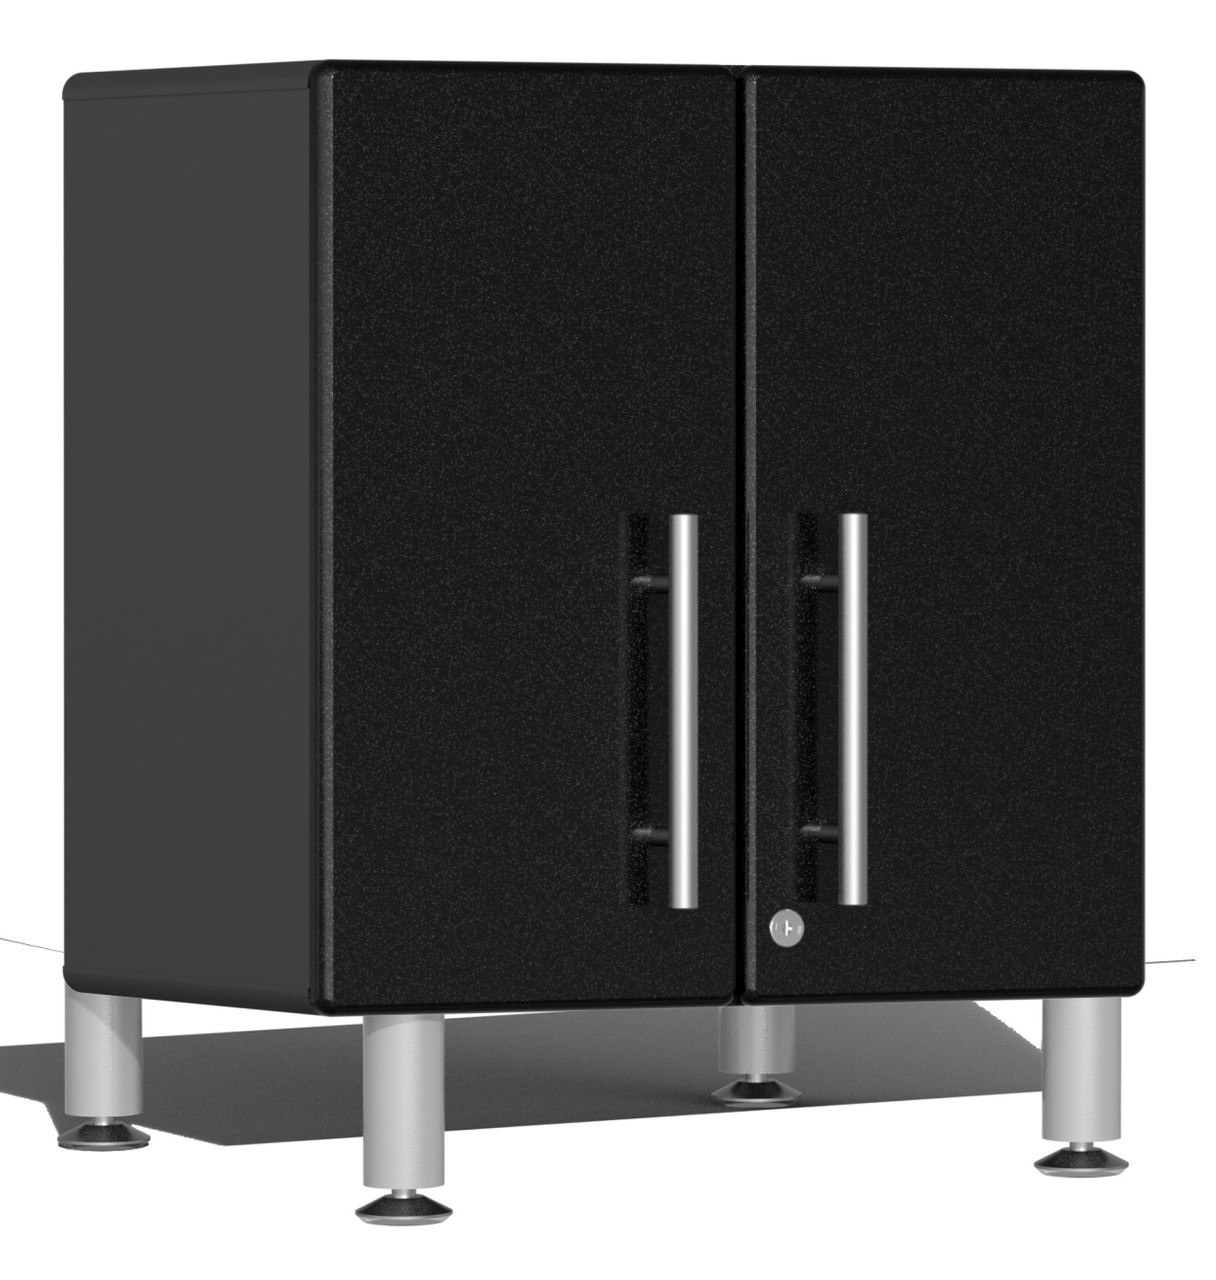 Ulti-MATE Garage 2.0 Series 2-Door All-Purpose Base Cabinet - Black (with feet)(UG21309B)